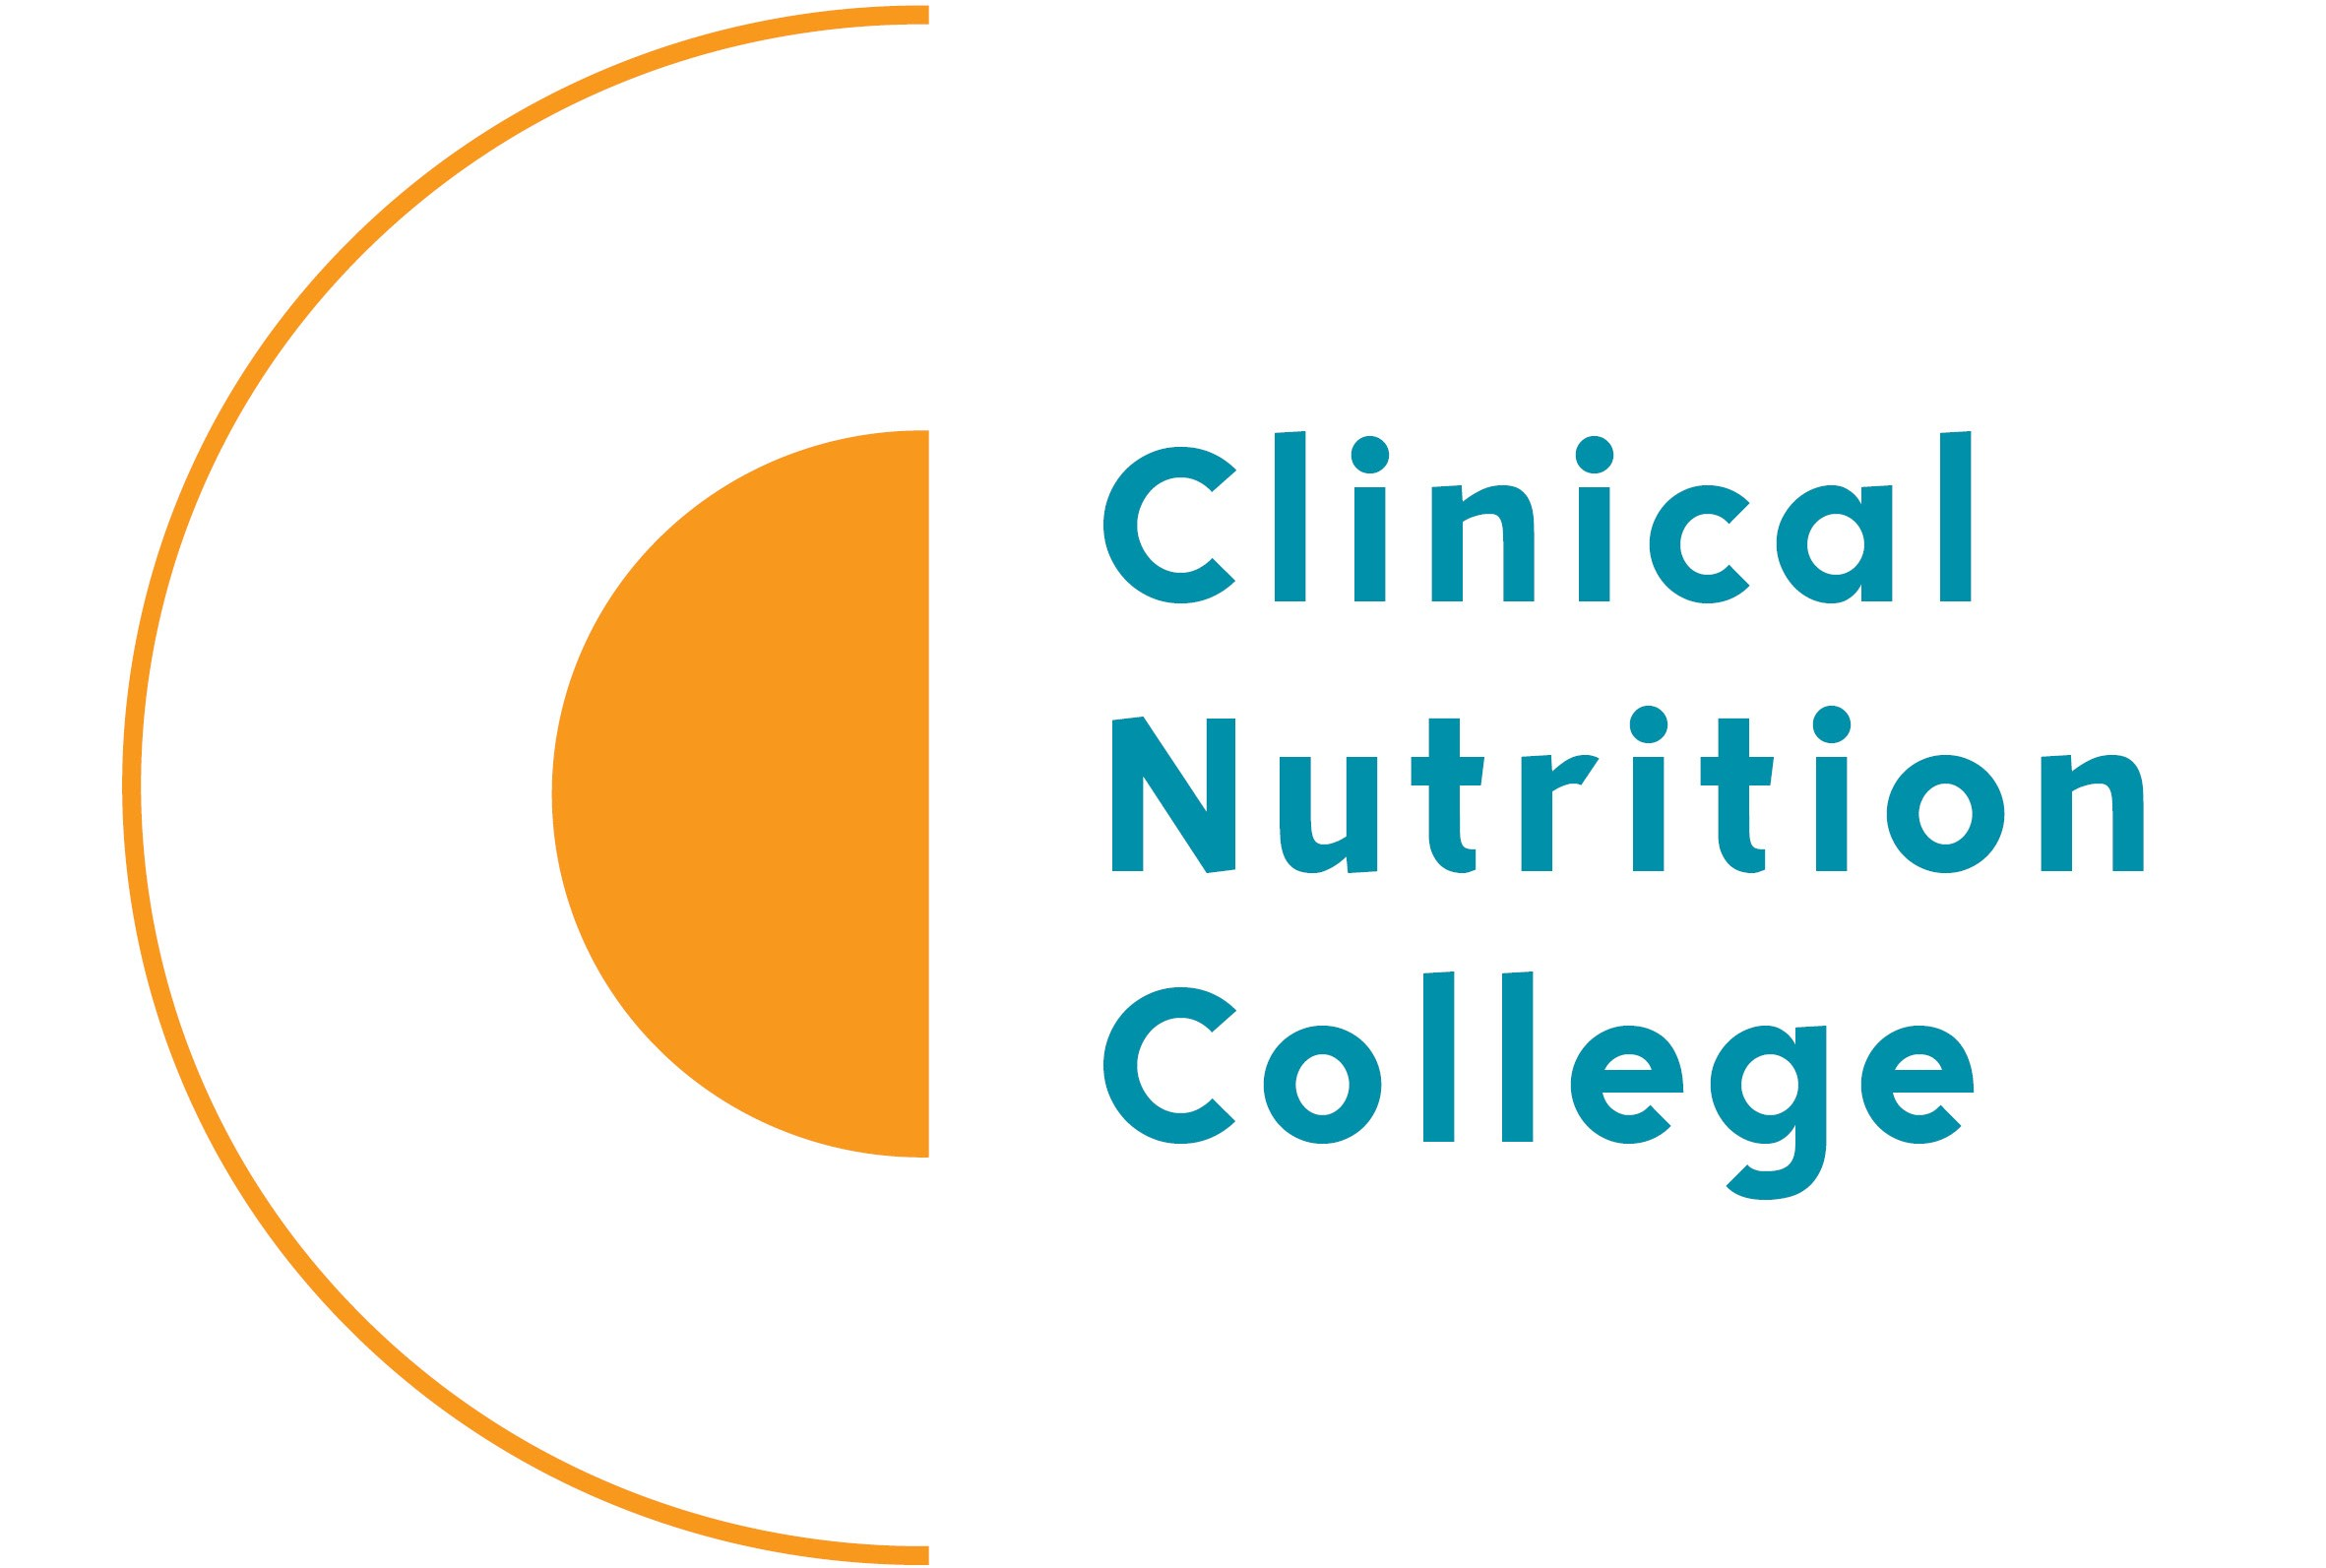 Clinical Nutrition College